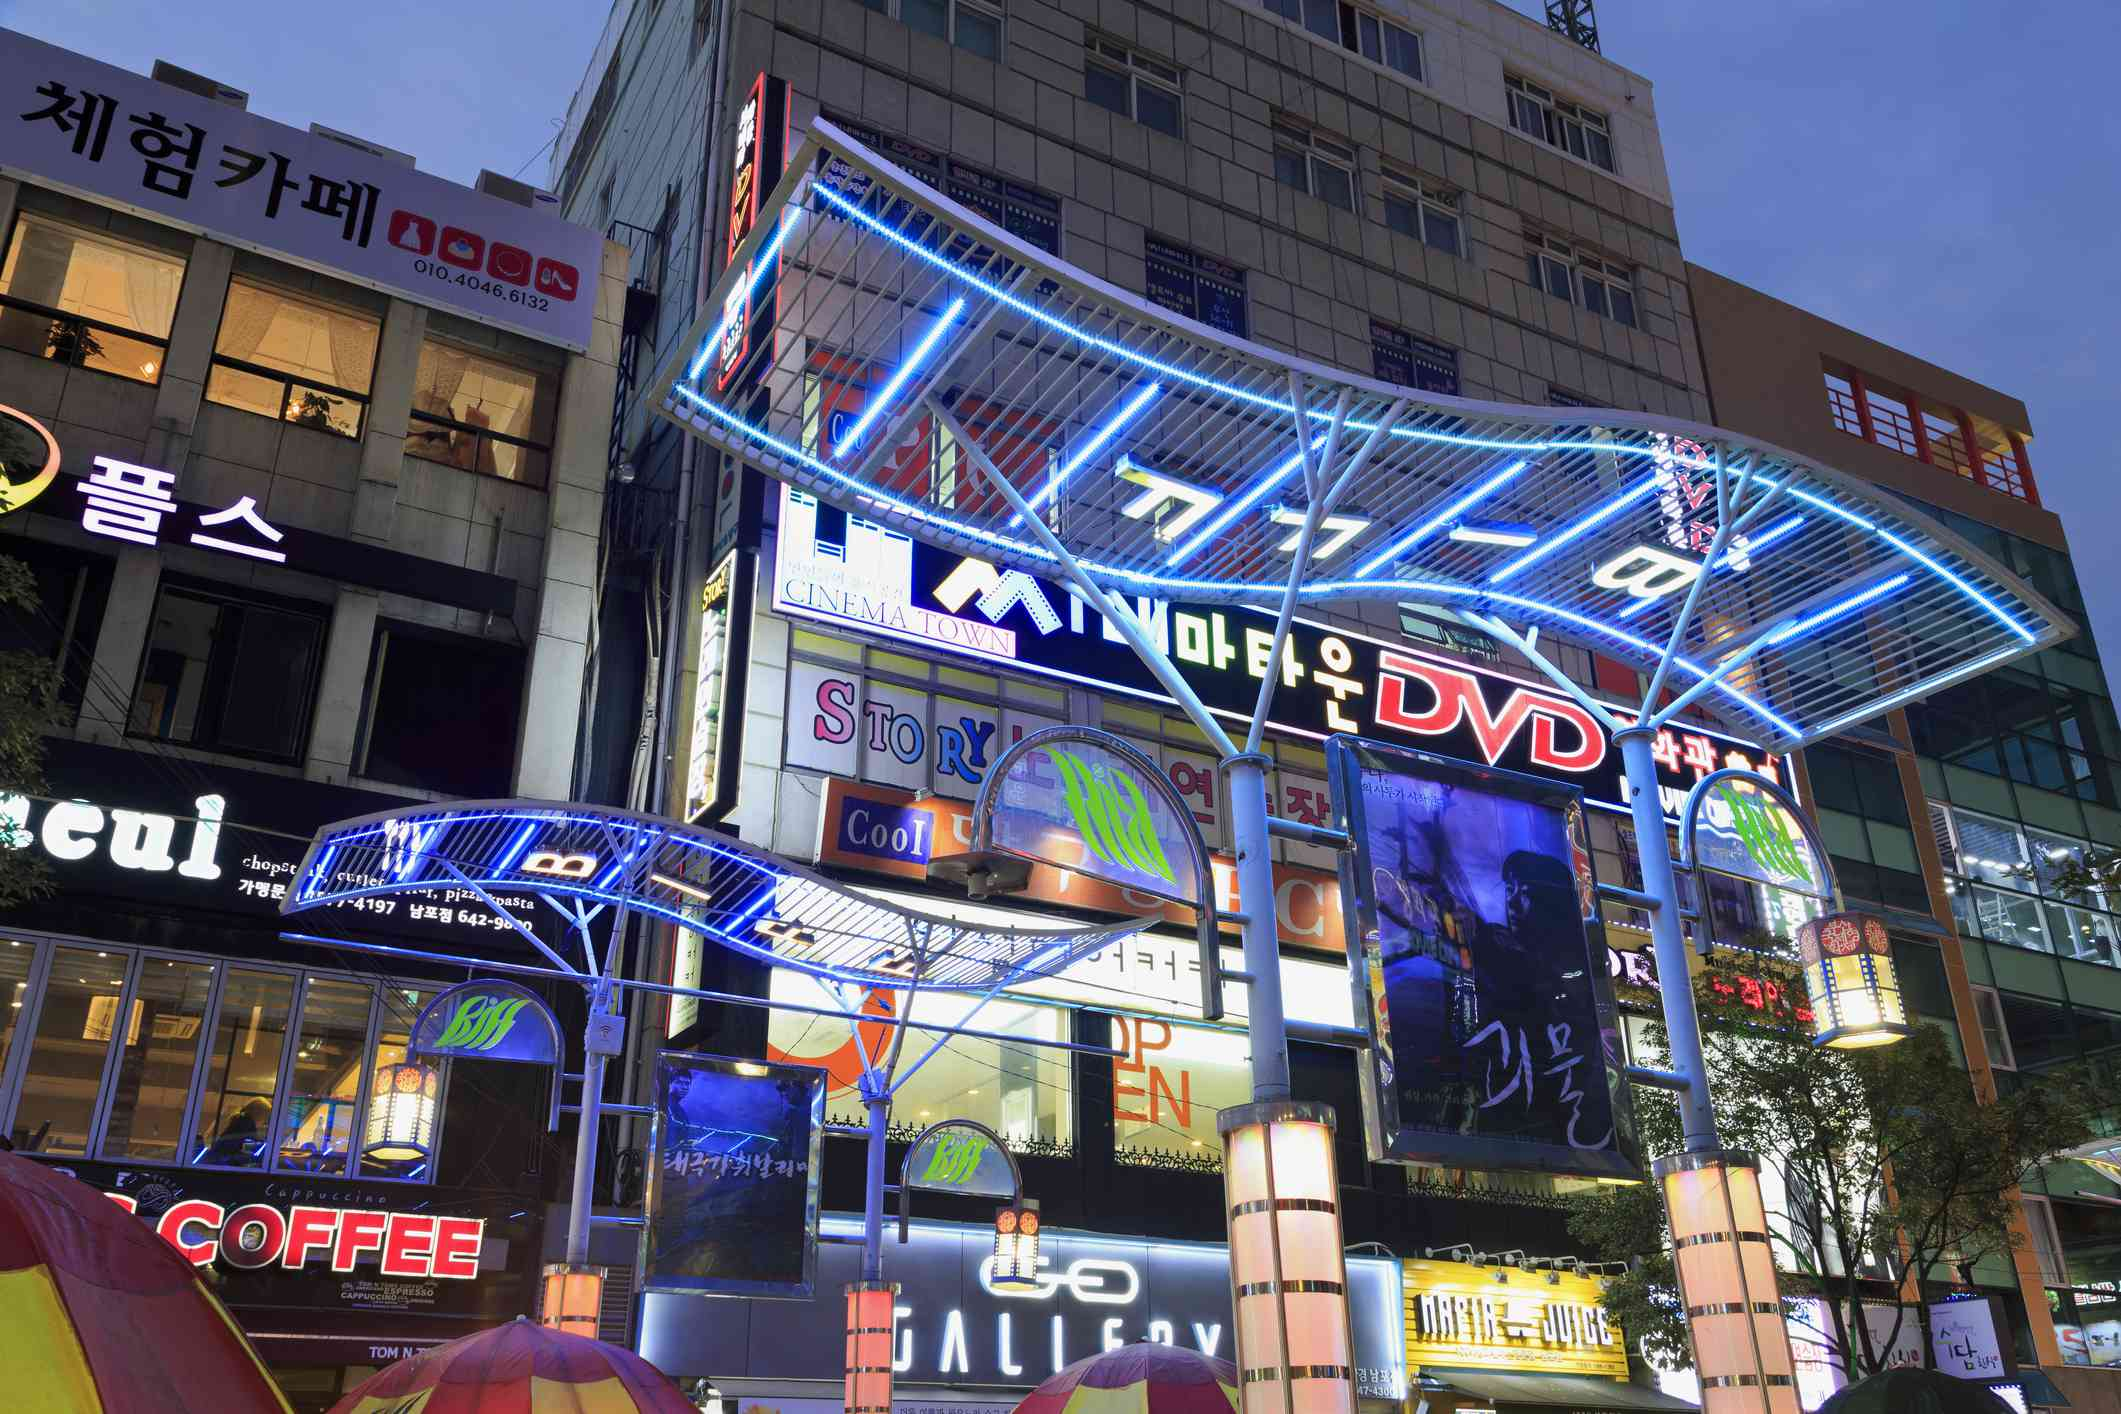 shops and neon signs at night in Busan, South Korea